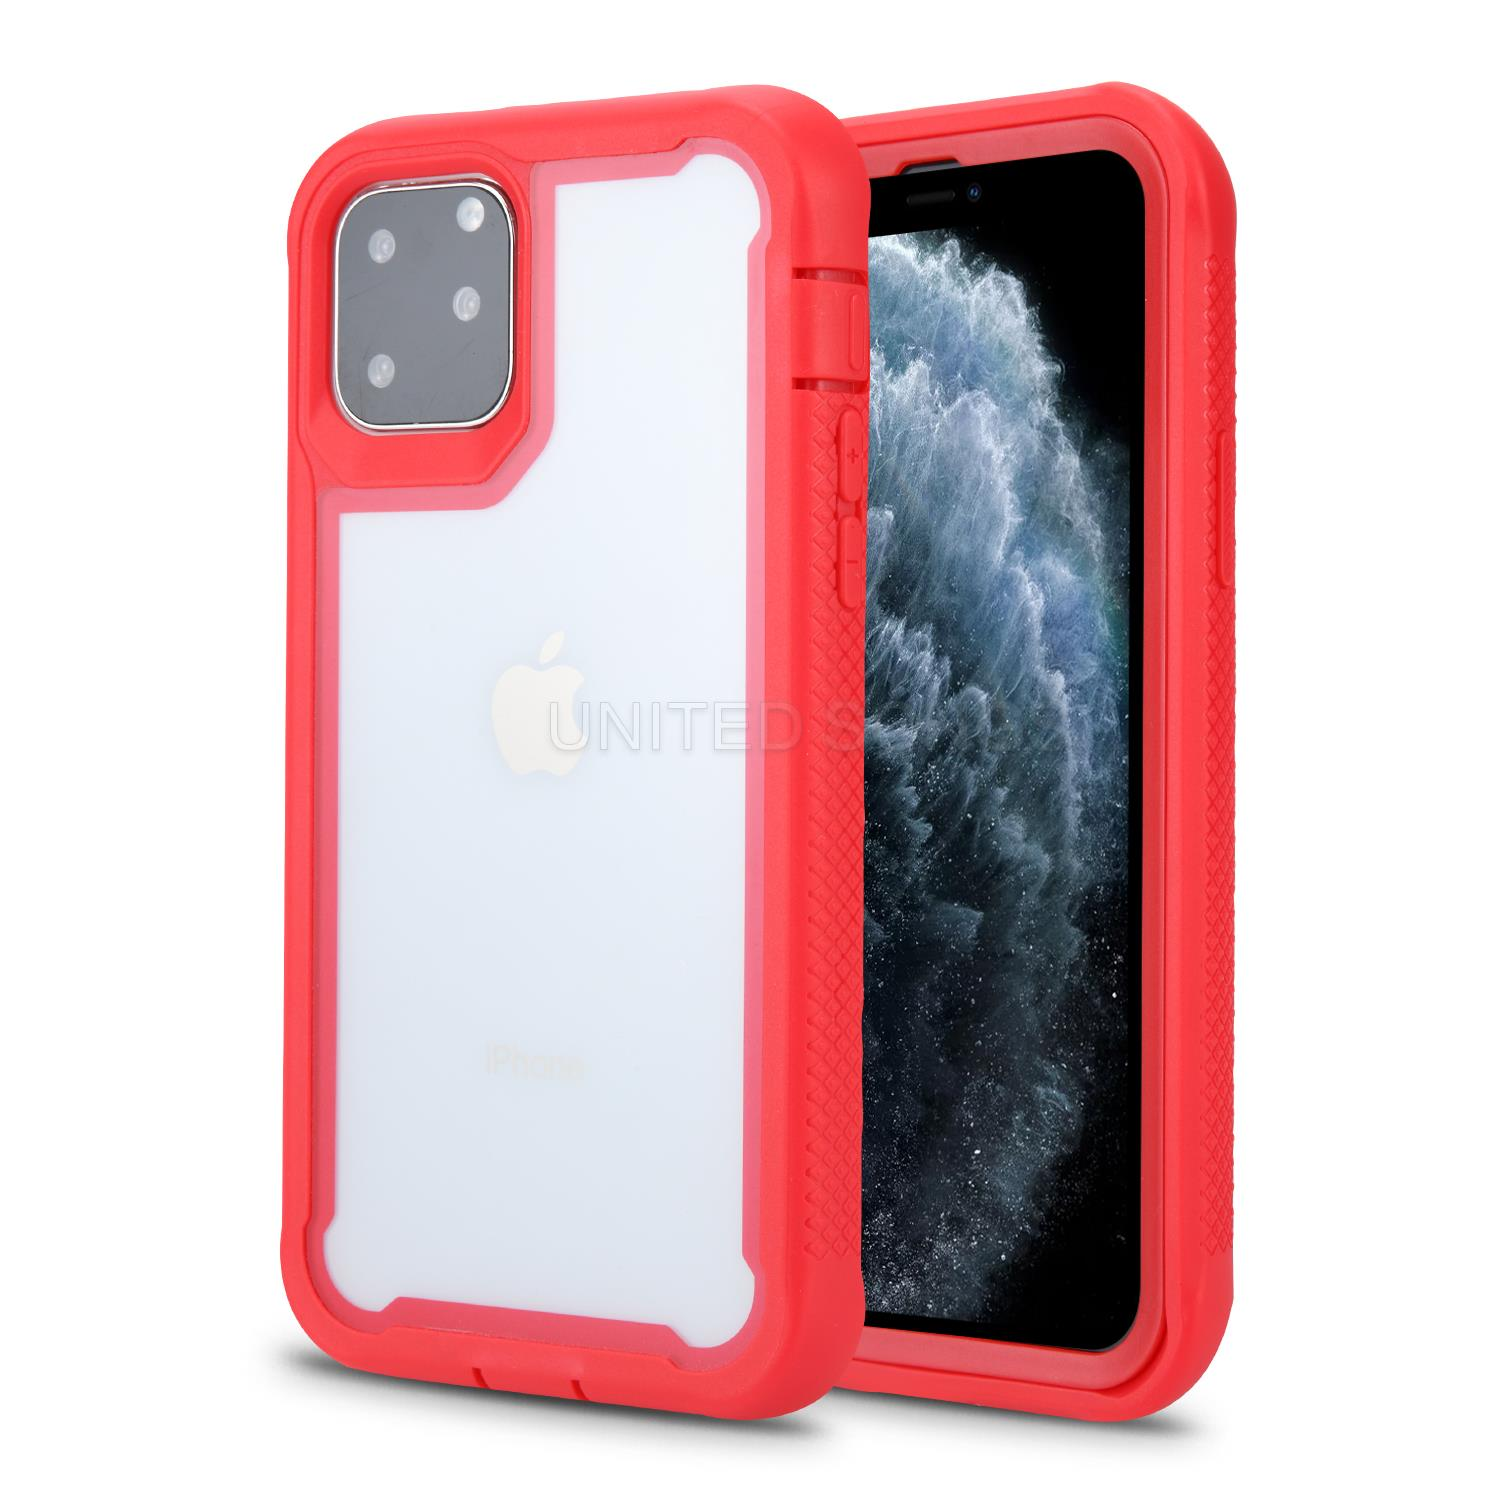 iPhone 11 Pro Max New HDT Hybrid Transparent Case Red/Red